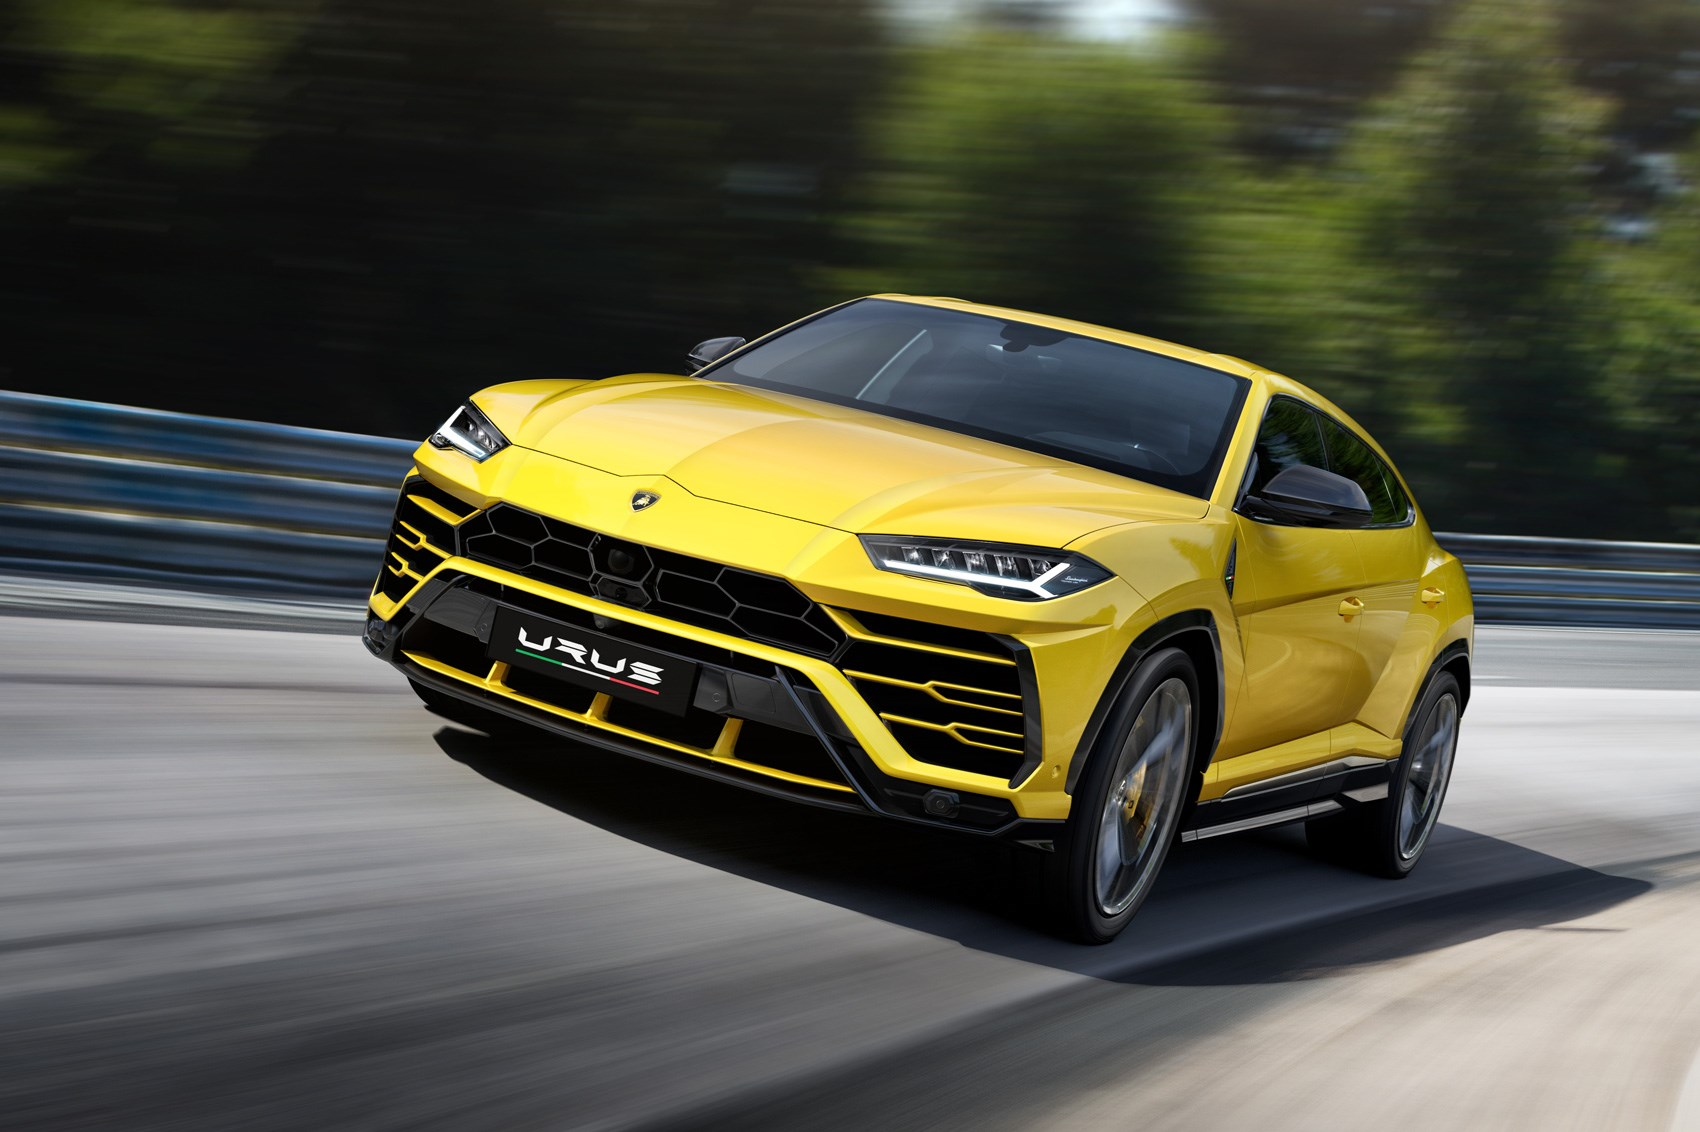 Lamborghini Urus (2018) SUV: Everything You Need To Know ...